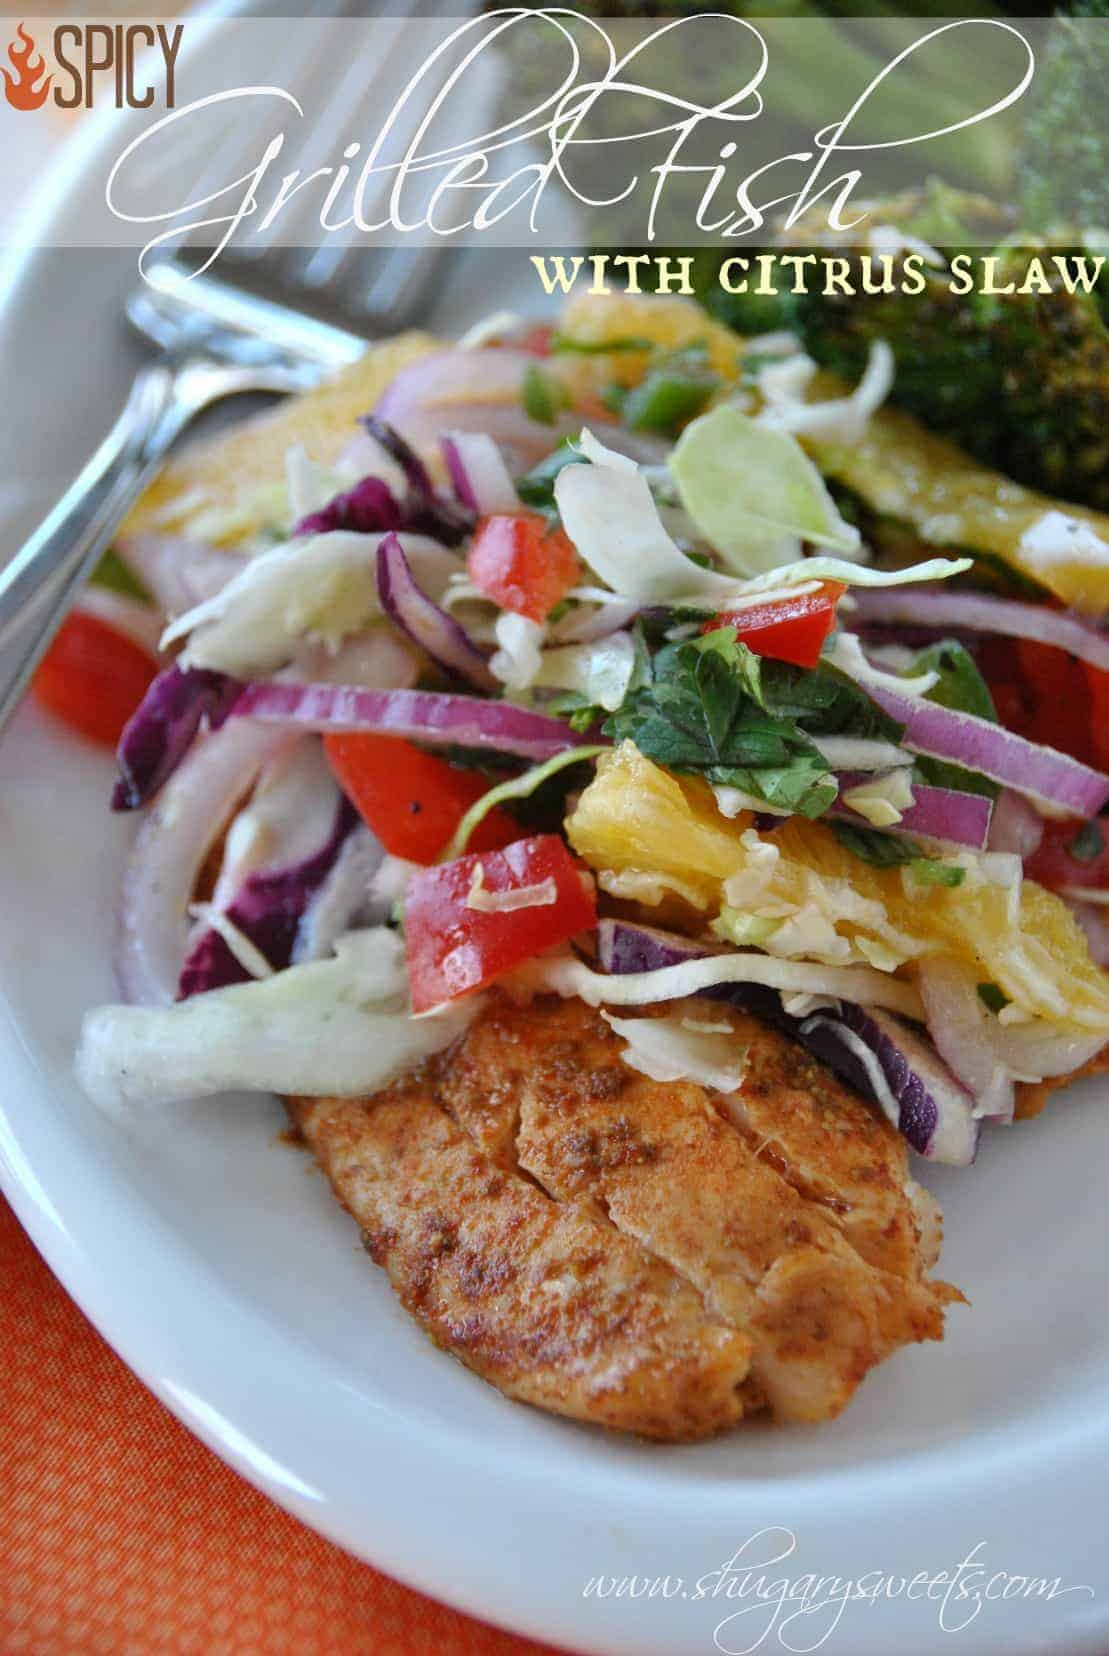 Spicy grilled fish with citrus slaw a delicious and for Healthy fish dinner recipes